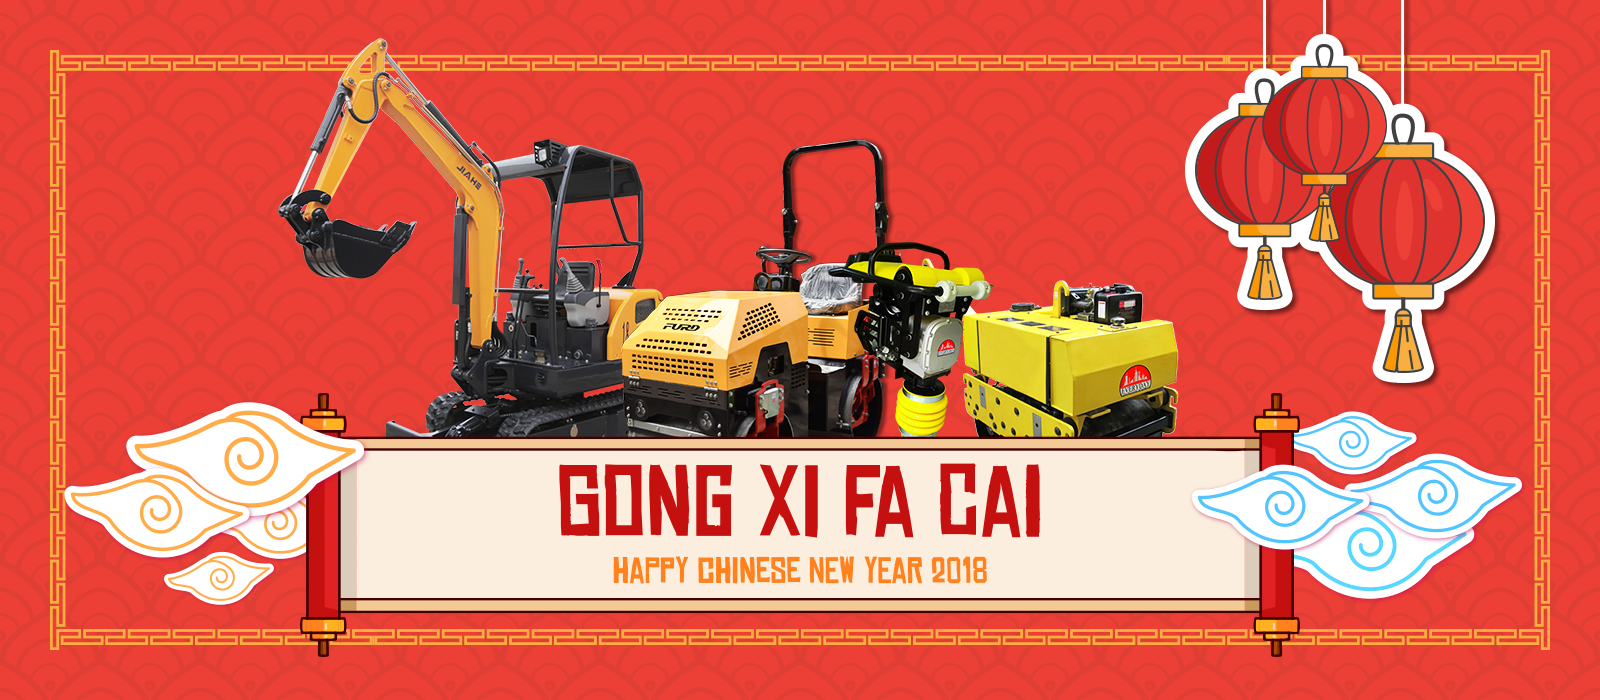 gong xi fa chai happy chinese new years